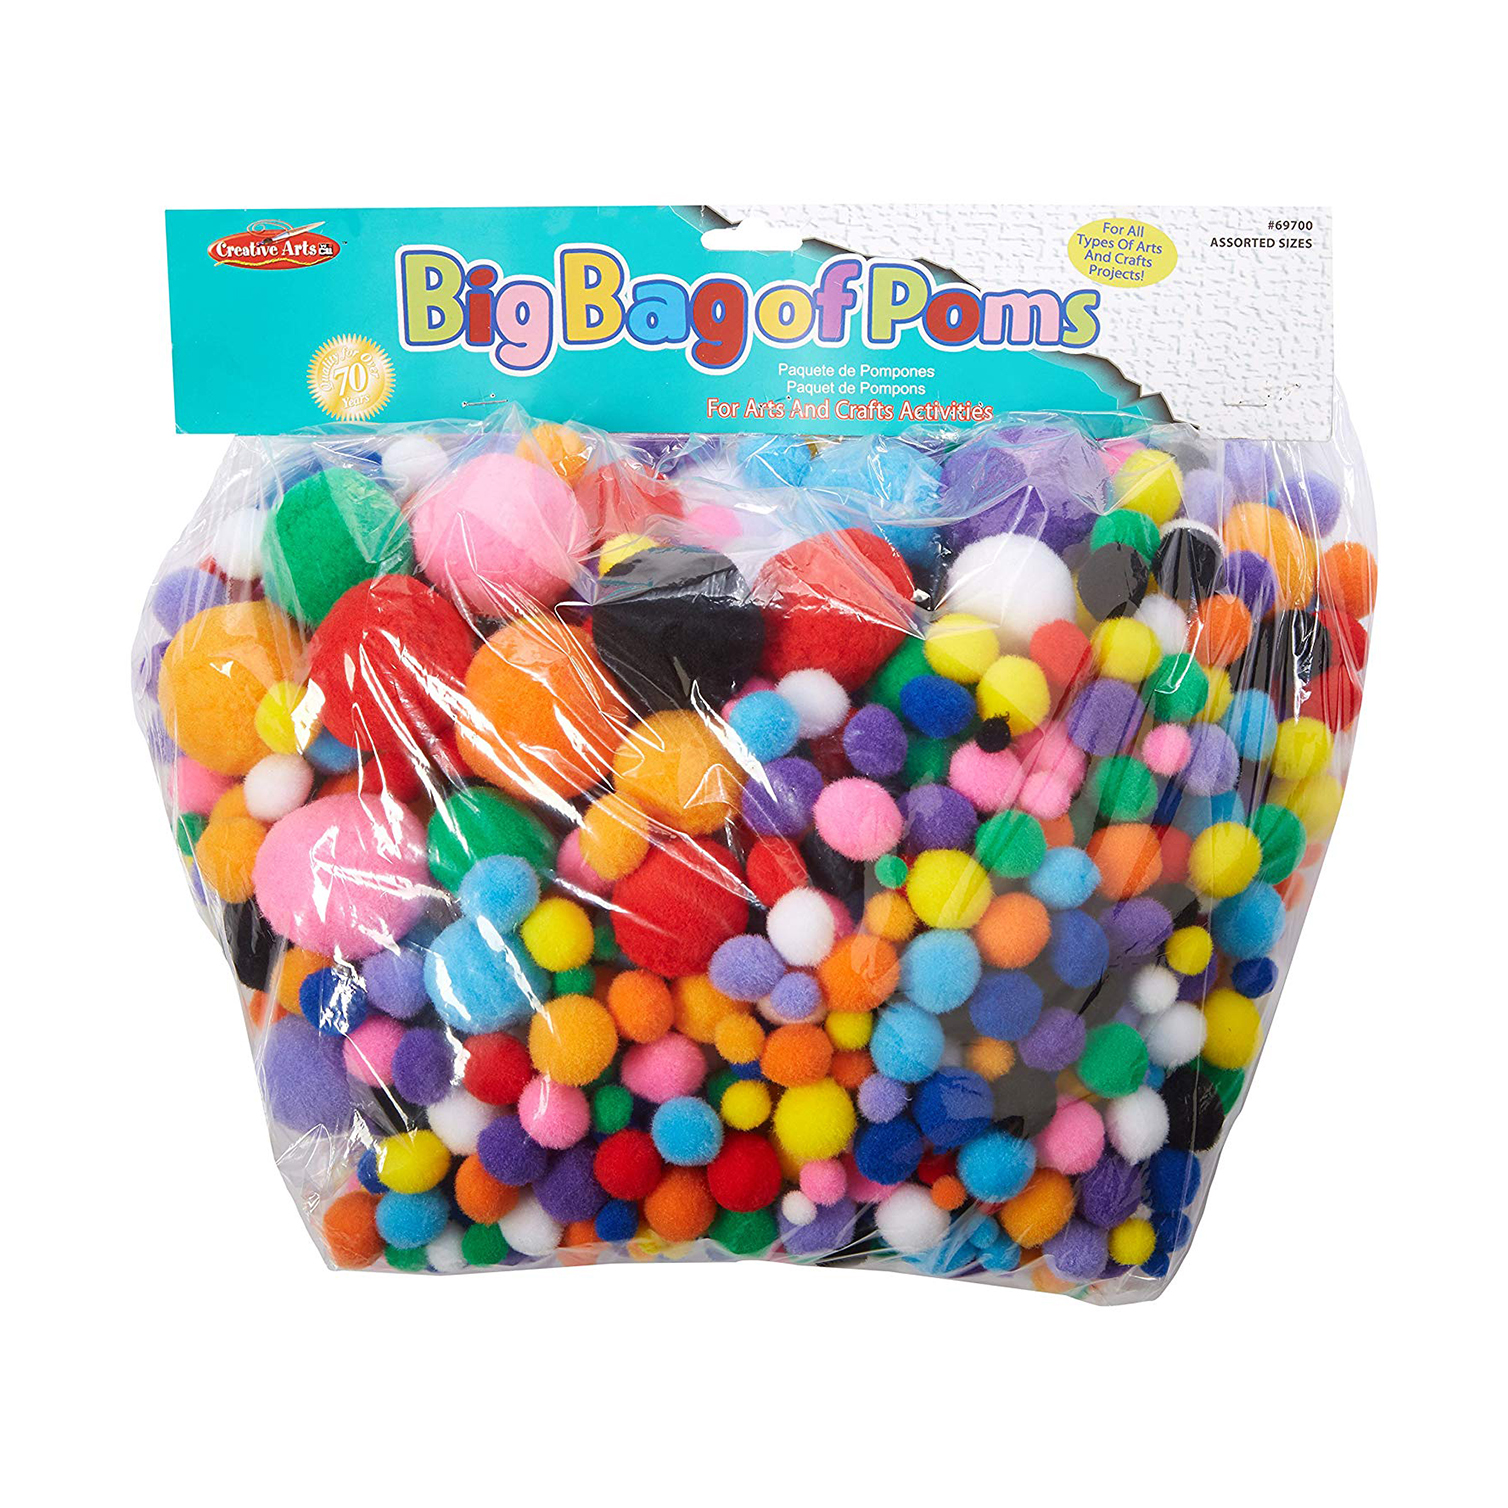 Our favorite pom-poms for toddler activities